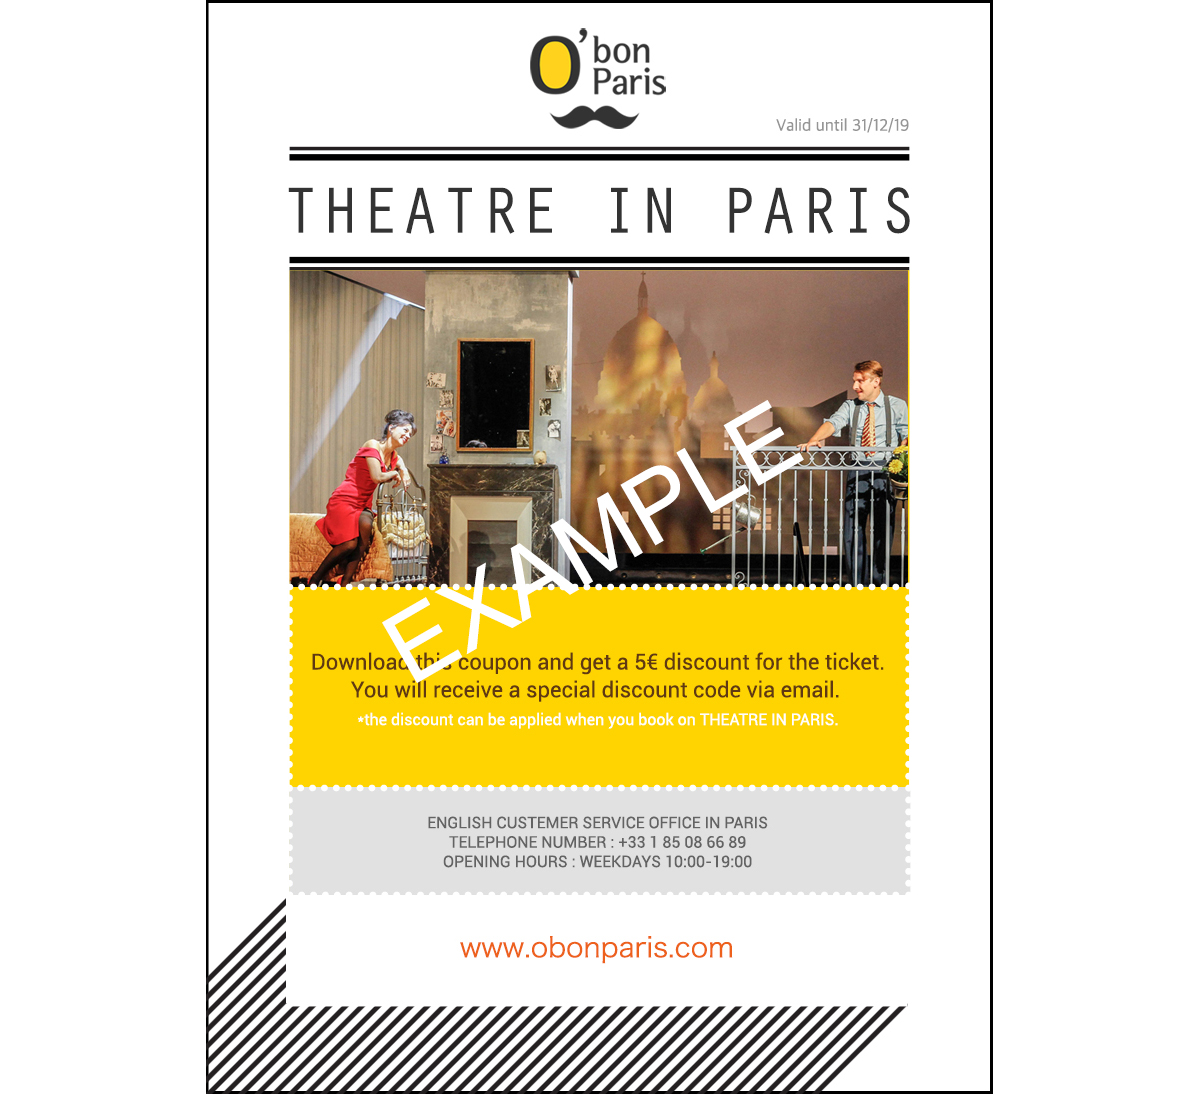 THEATRE IN PARIS